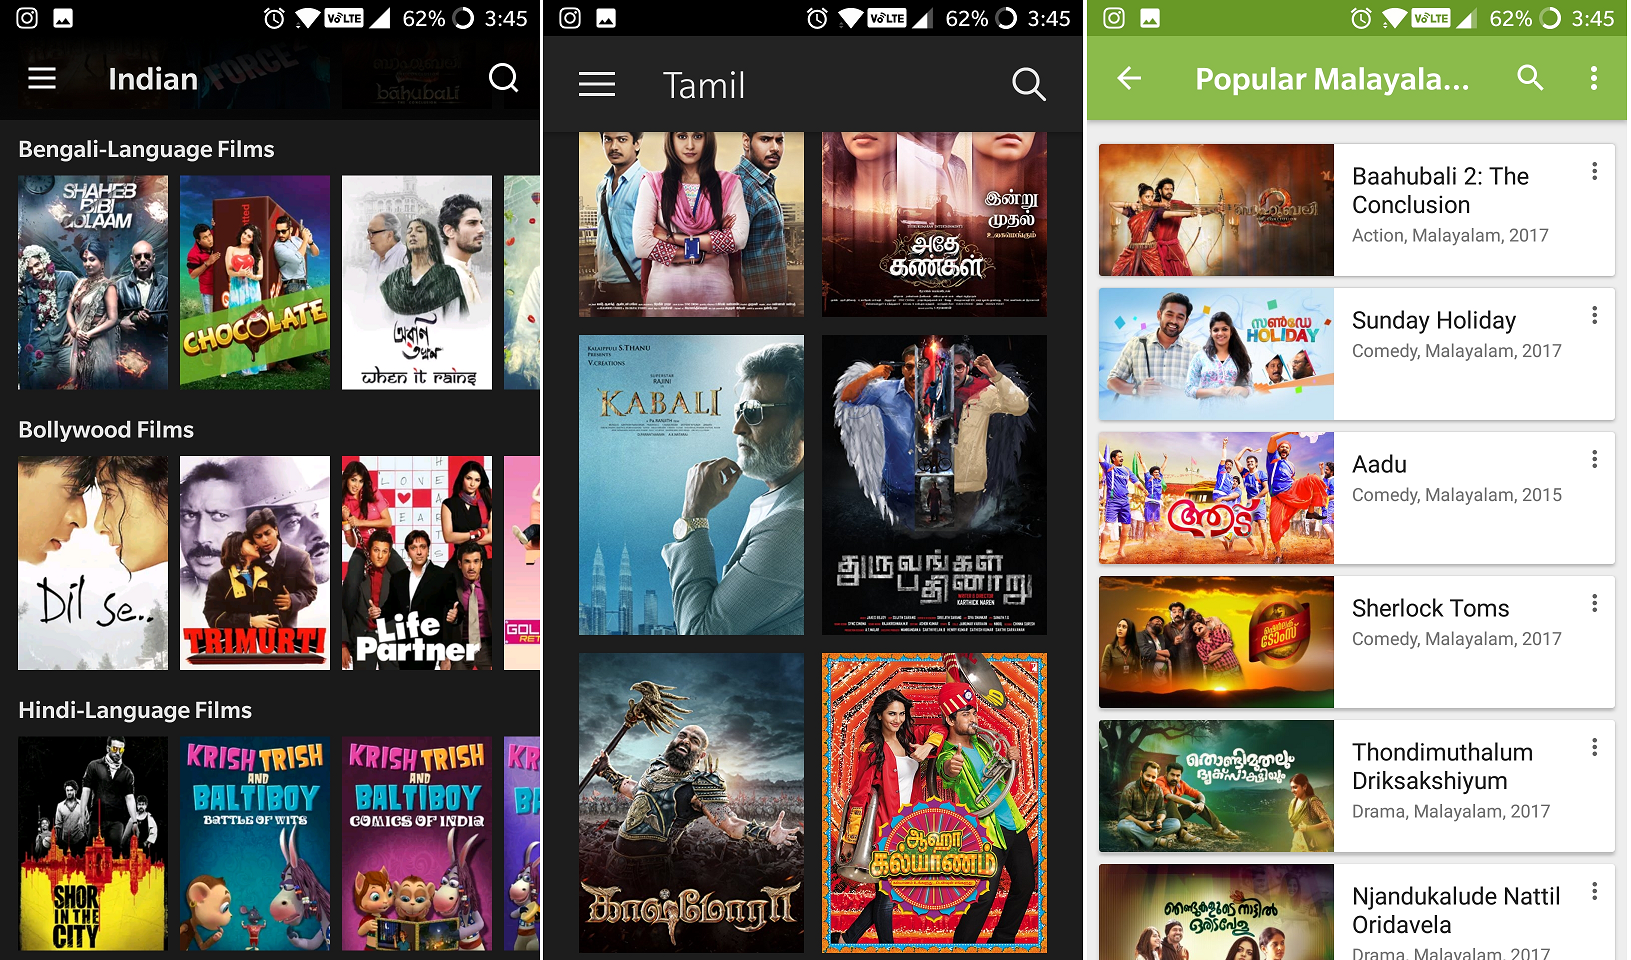 Netflix vs Amazon Prime vs Hotstar: Which is the best streaming